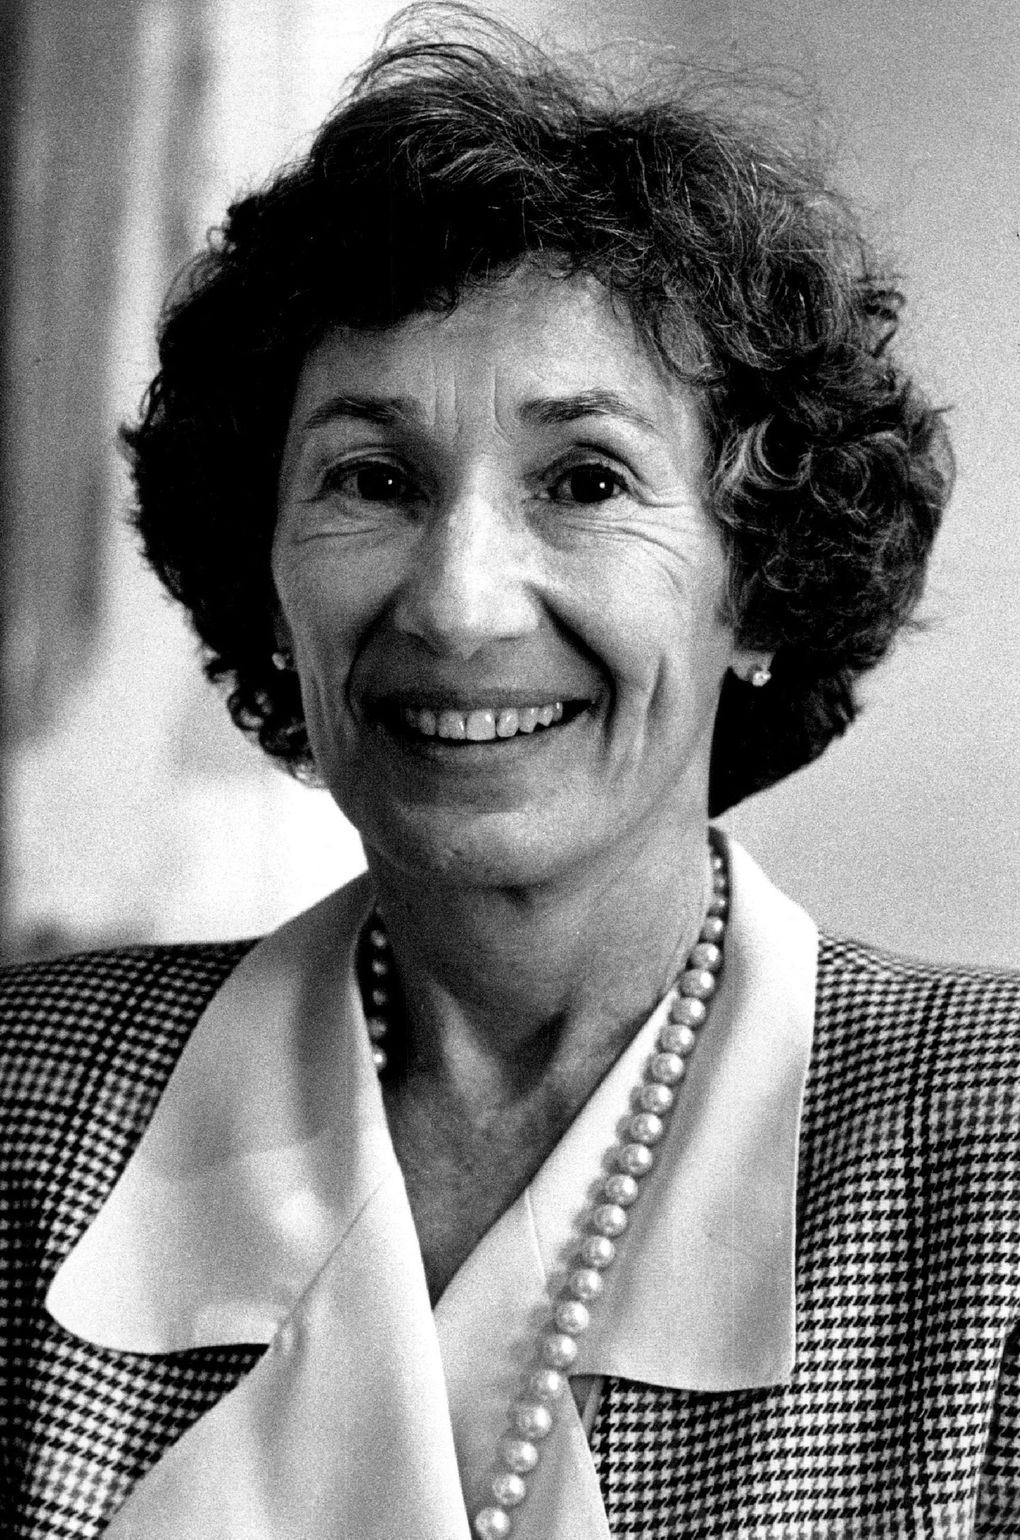 Virginia Wright, who changed Seattle's cultural landscape, died Feb. 18 at age 91. (Benjamin Benschneider / The Seattle Times)